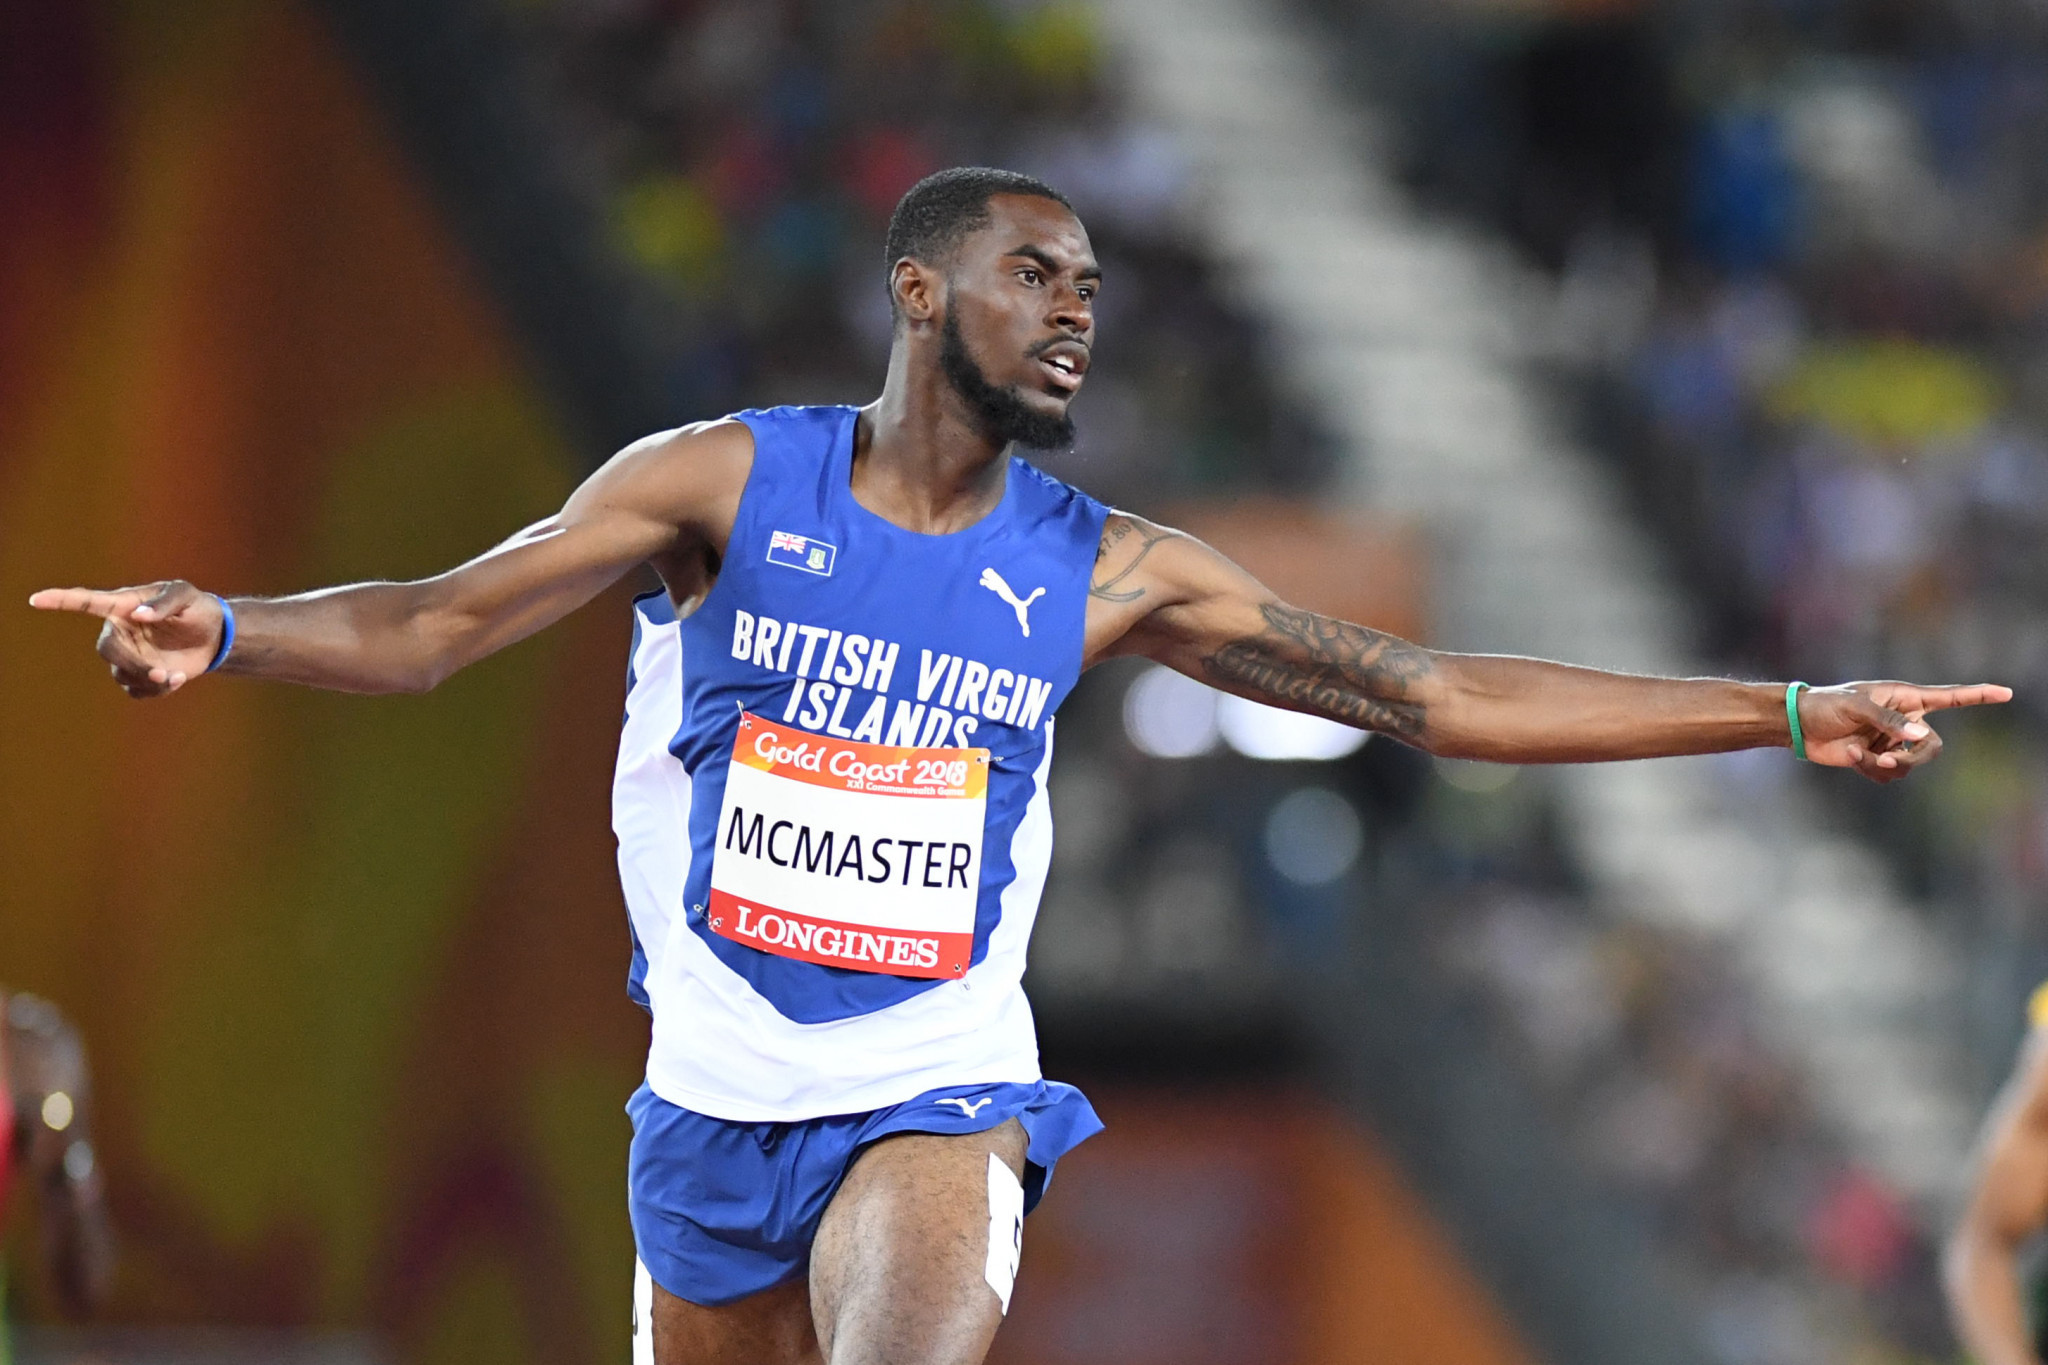 Kyron McMaster wins the Commonwealth 400m hurdles title for the British Virgin Islands last year - his country now hopes he will next earn a medal at the Pan American Games in Lima ©Getty Images